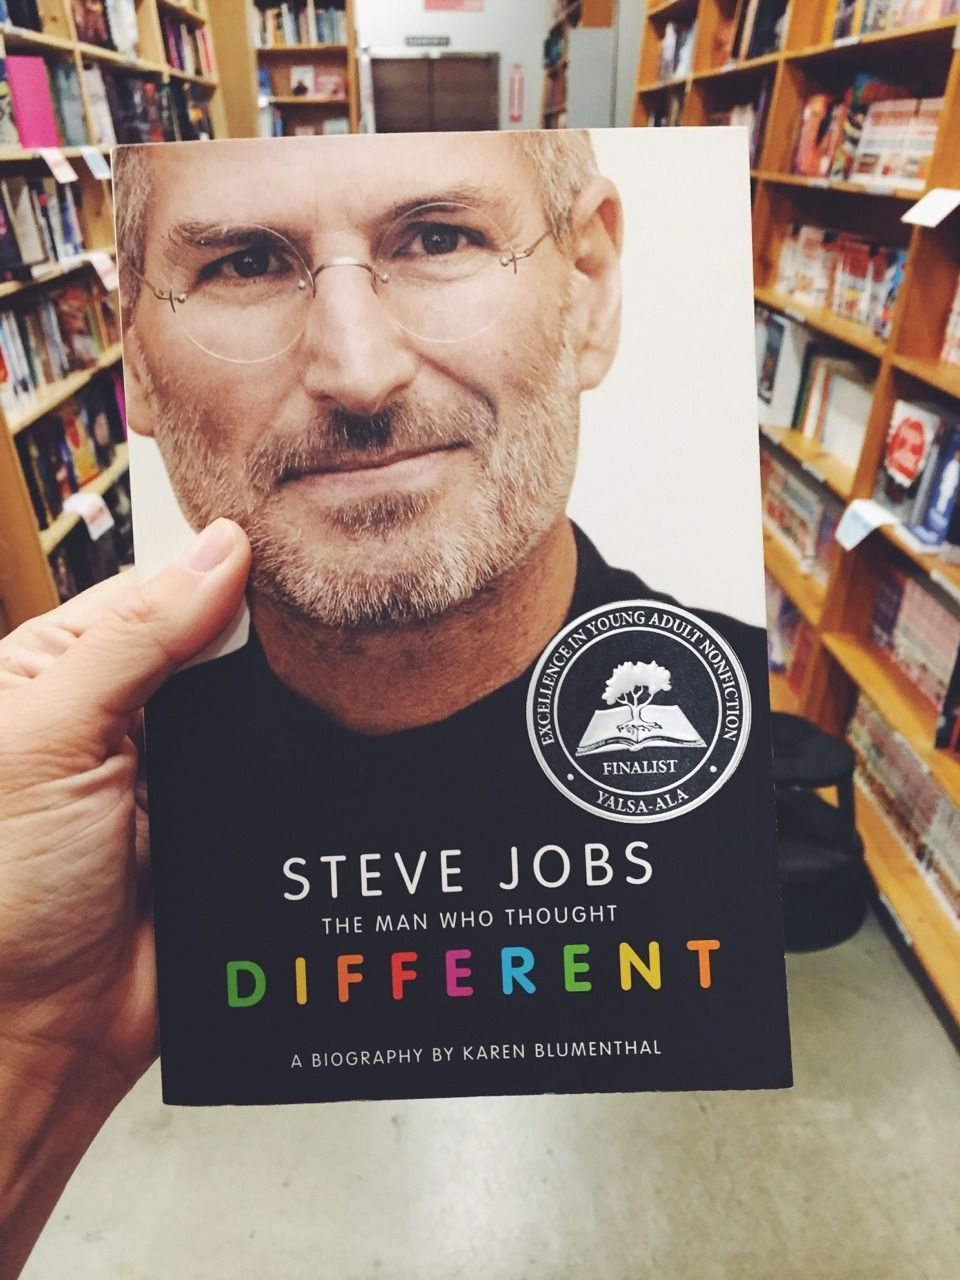 Steve Jobs: The Man Who Thought Different By Karen Blumenthal | Steve jobs,  Steve, Who founded apple